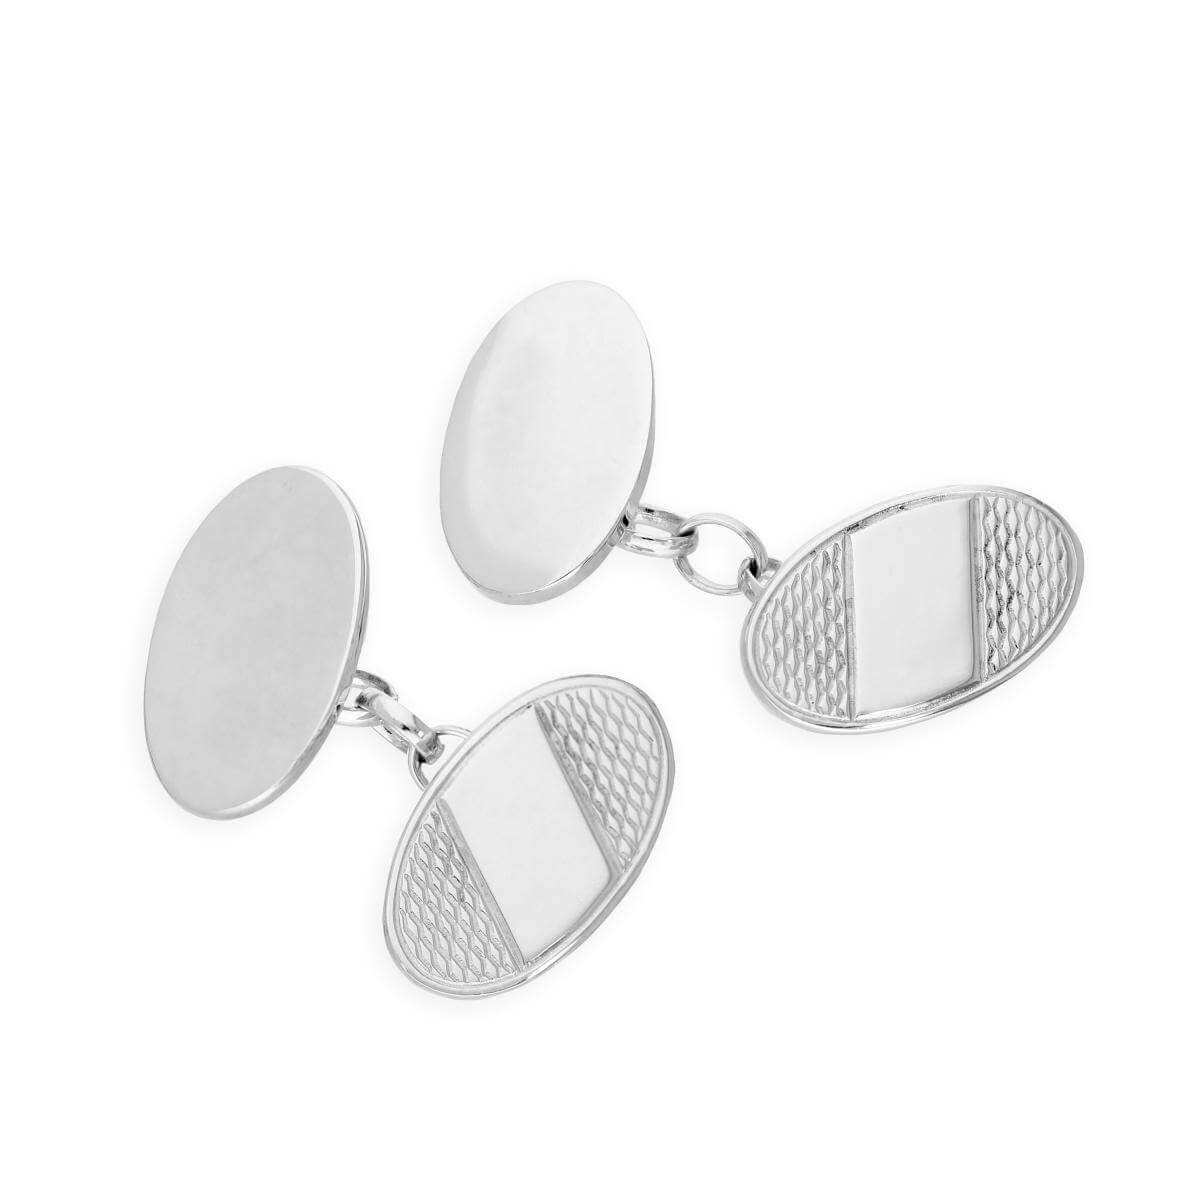 Sterling Silver Patterned Oval Cufflinks